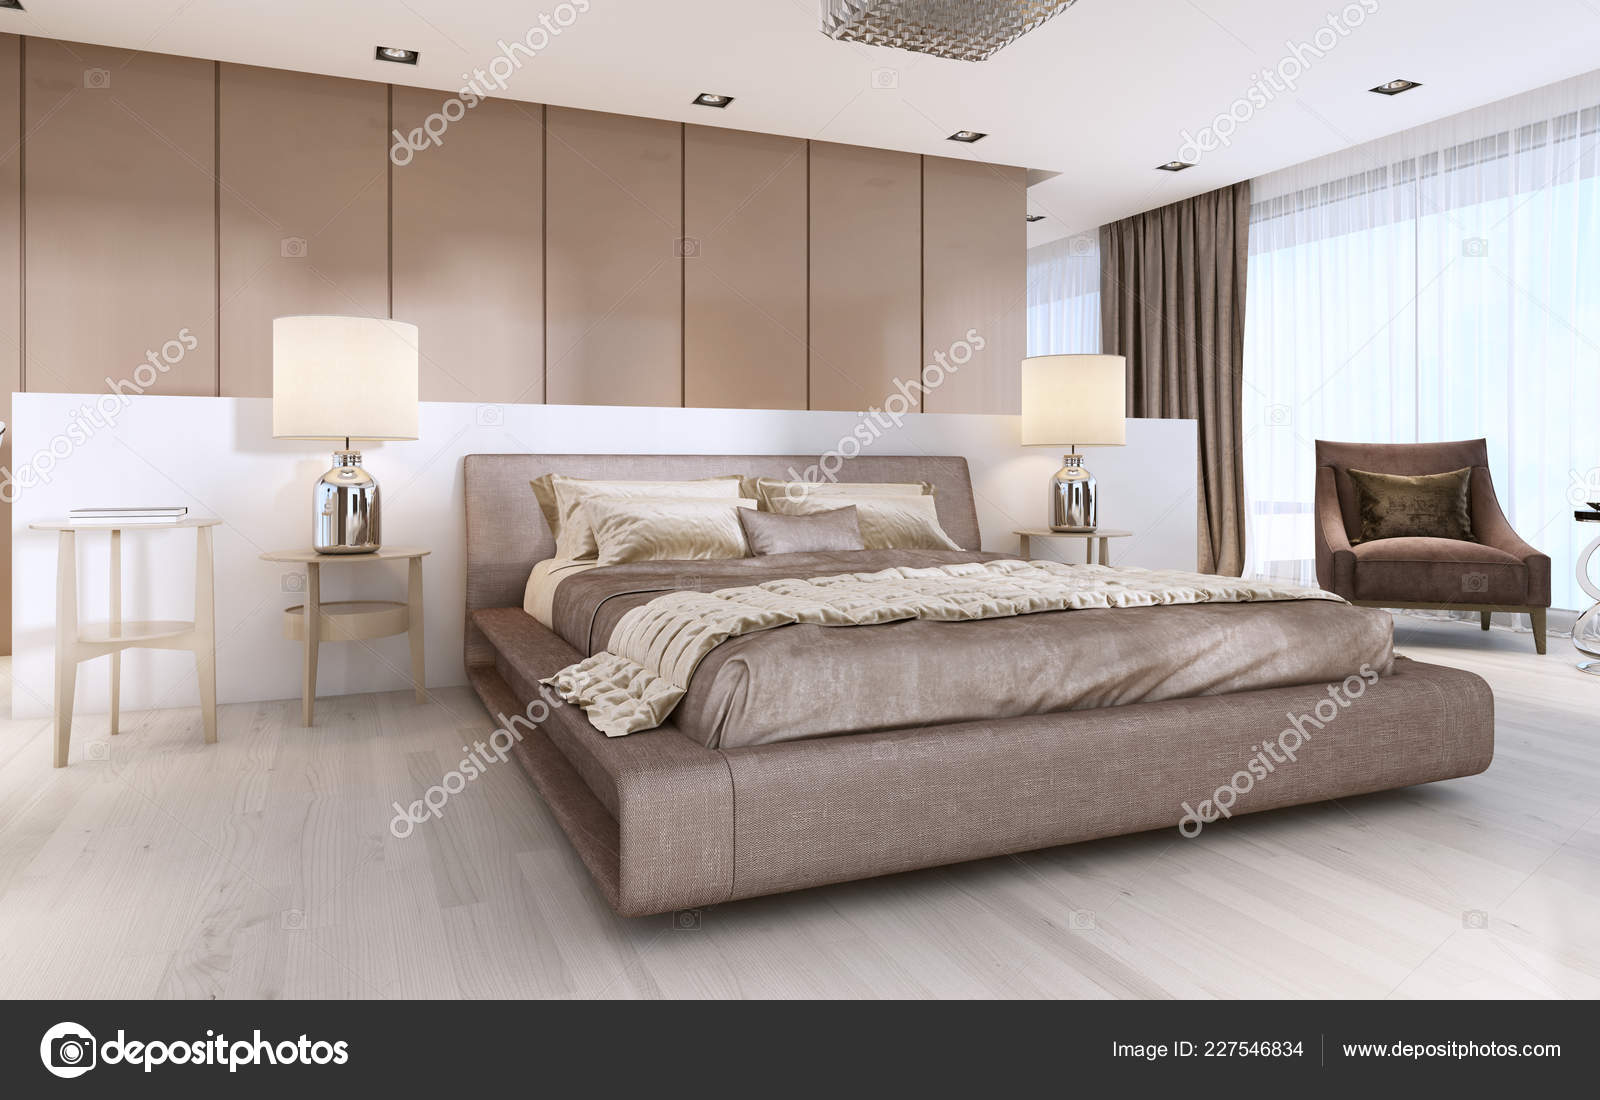 Large Bed Modern Style Bedside Tables Lamps Rendering Stock Photo C Kuprin33 227546834